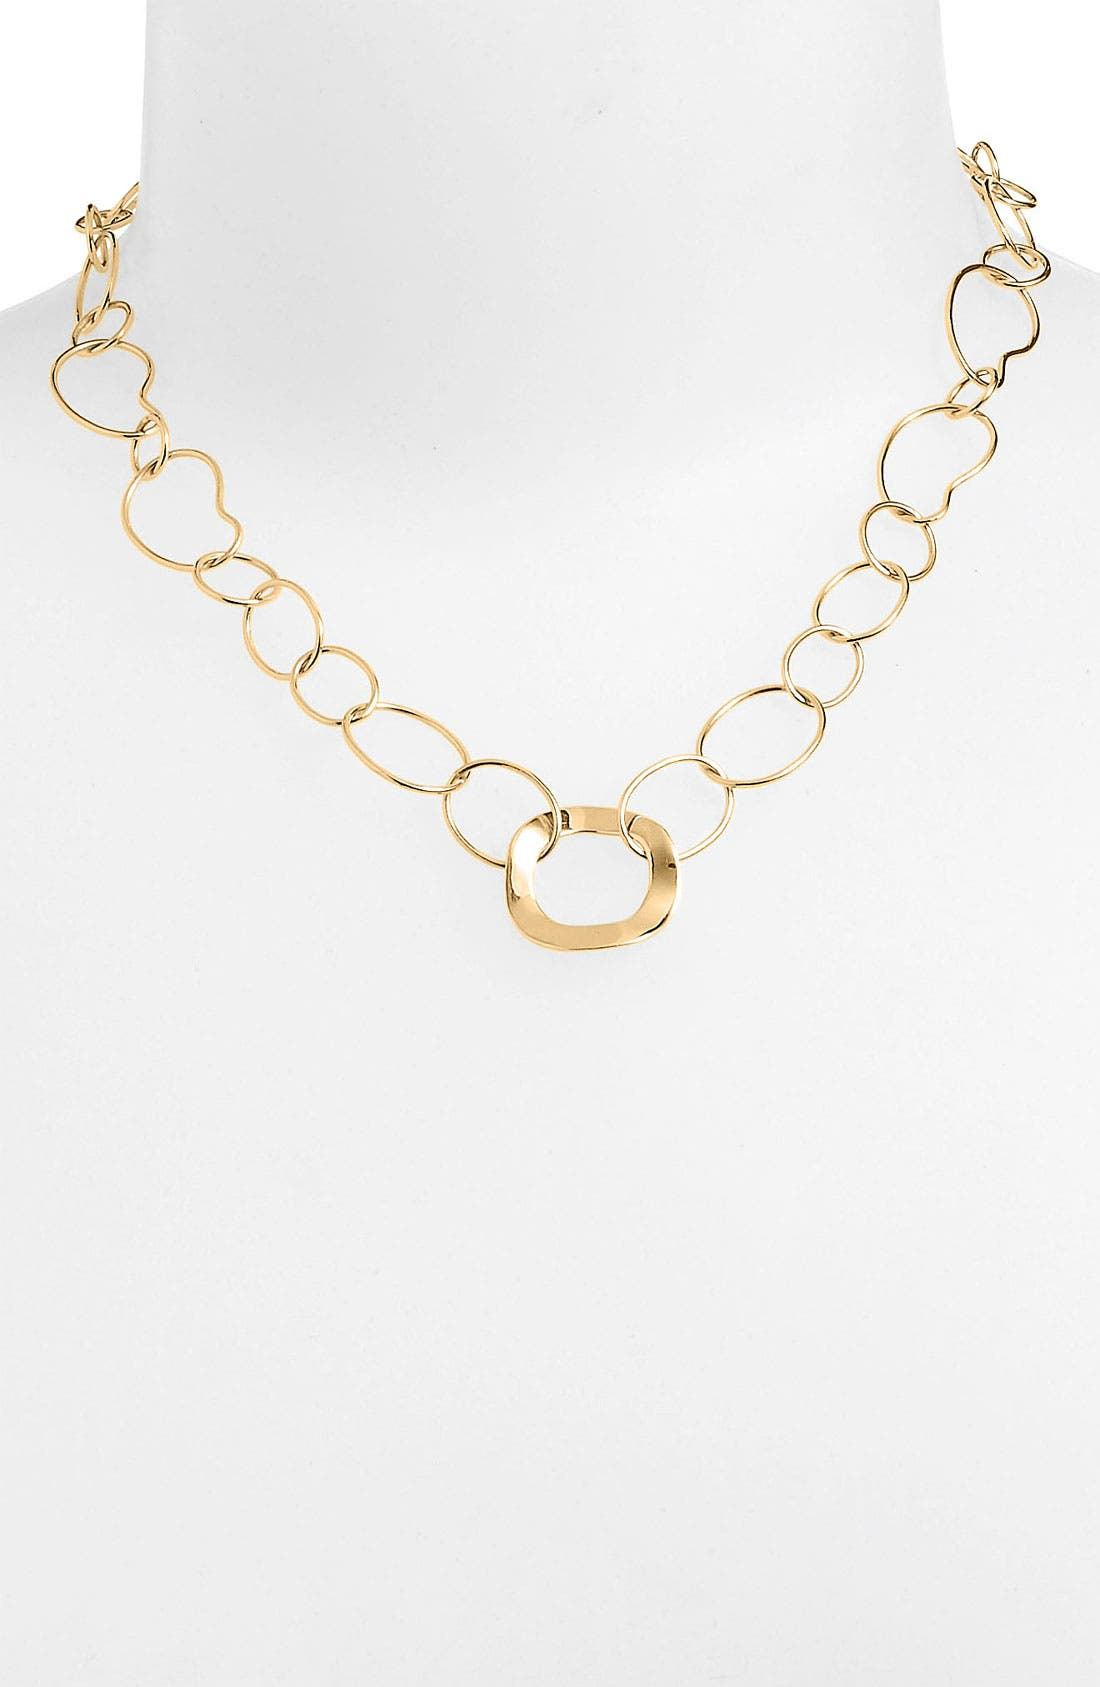 Main Image - Ippolita 'Plain' 18k Gold Chain Necklace